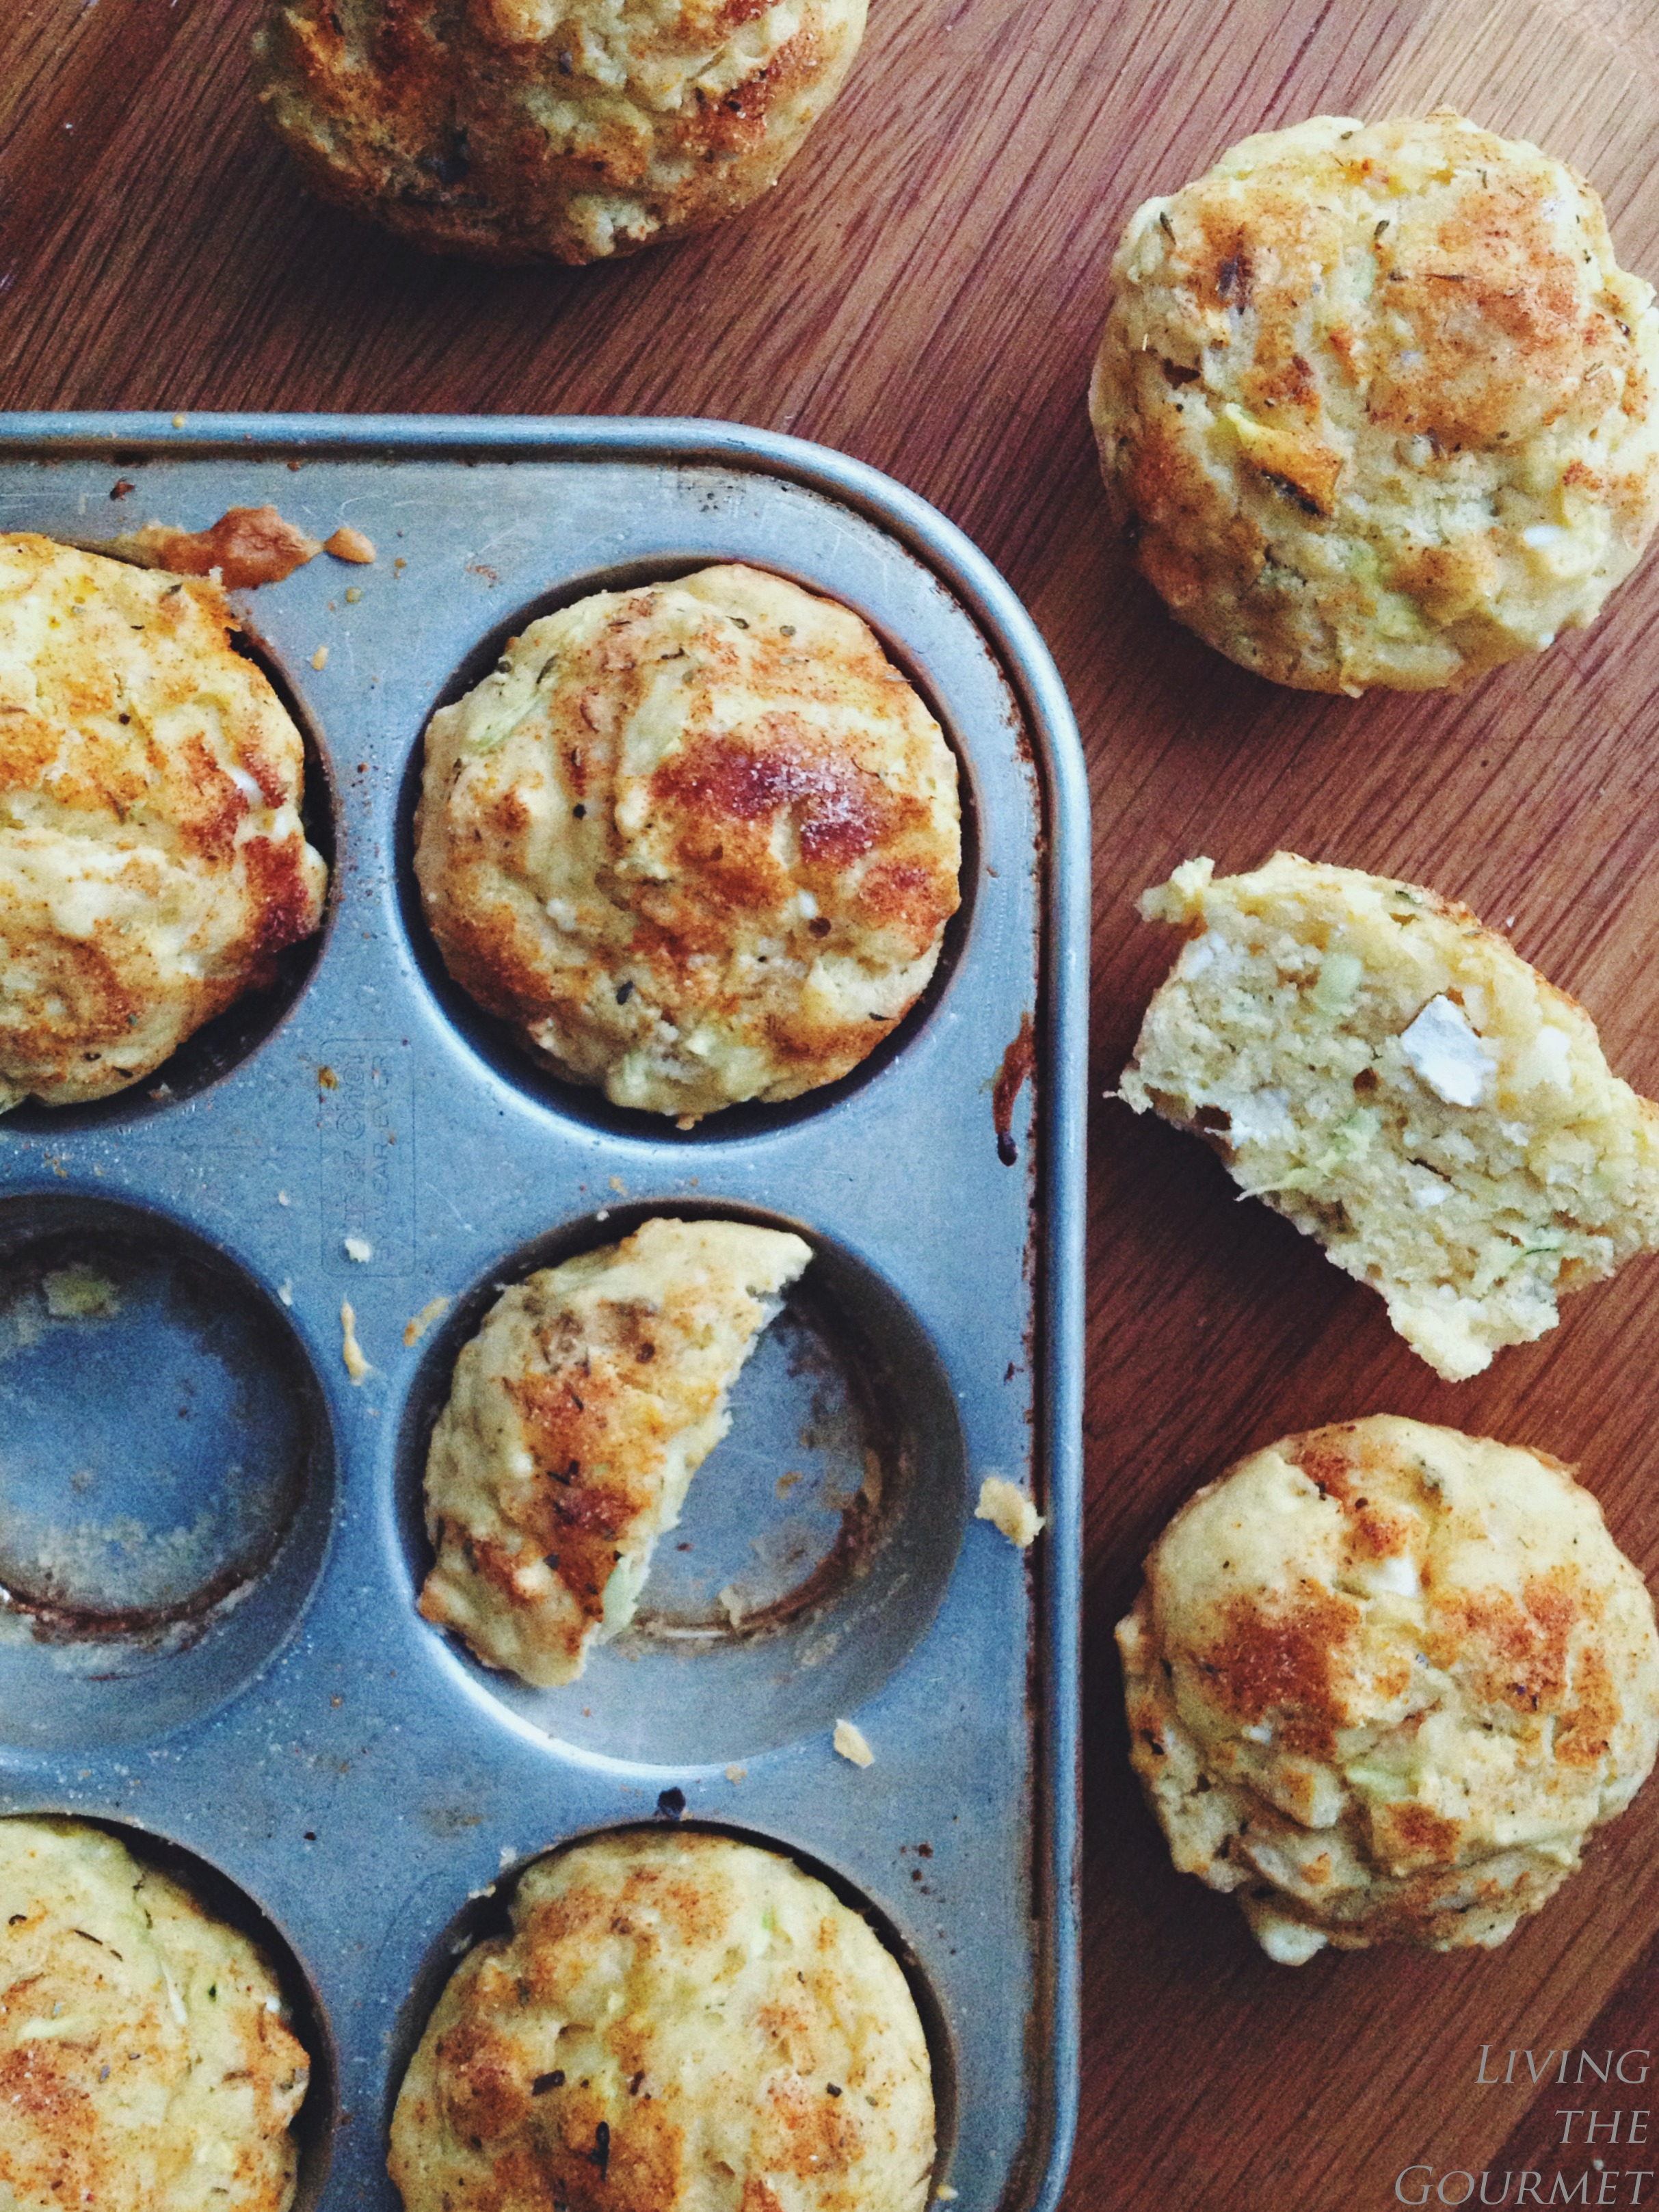 Living the Gourmet: Feta and Jalapeño Corn Muffins